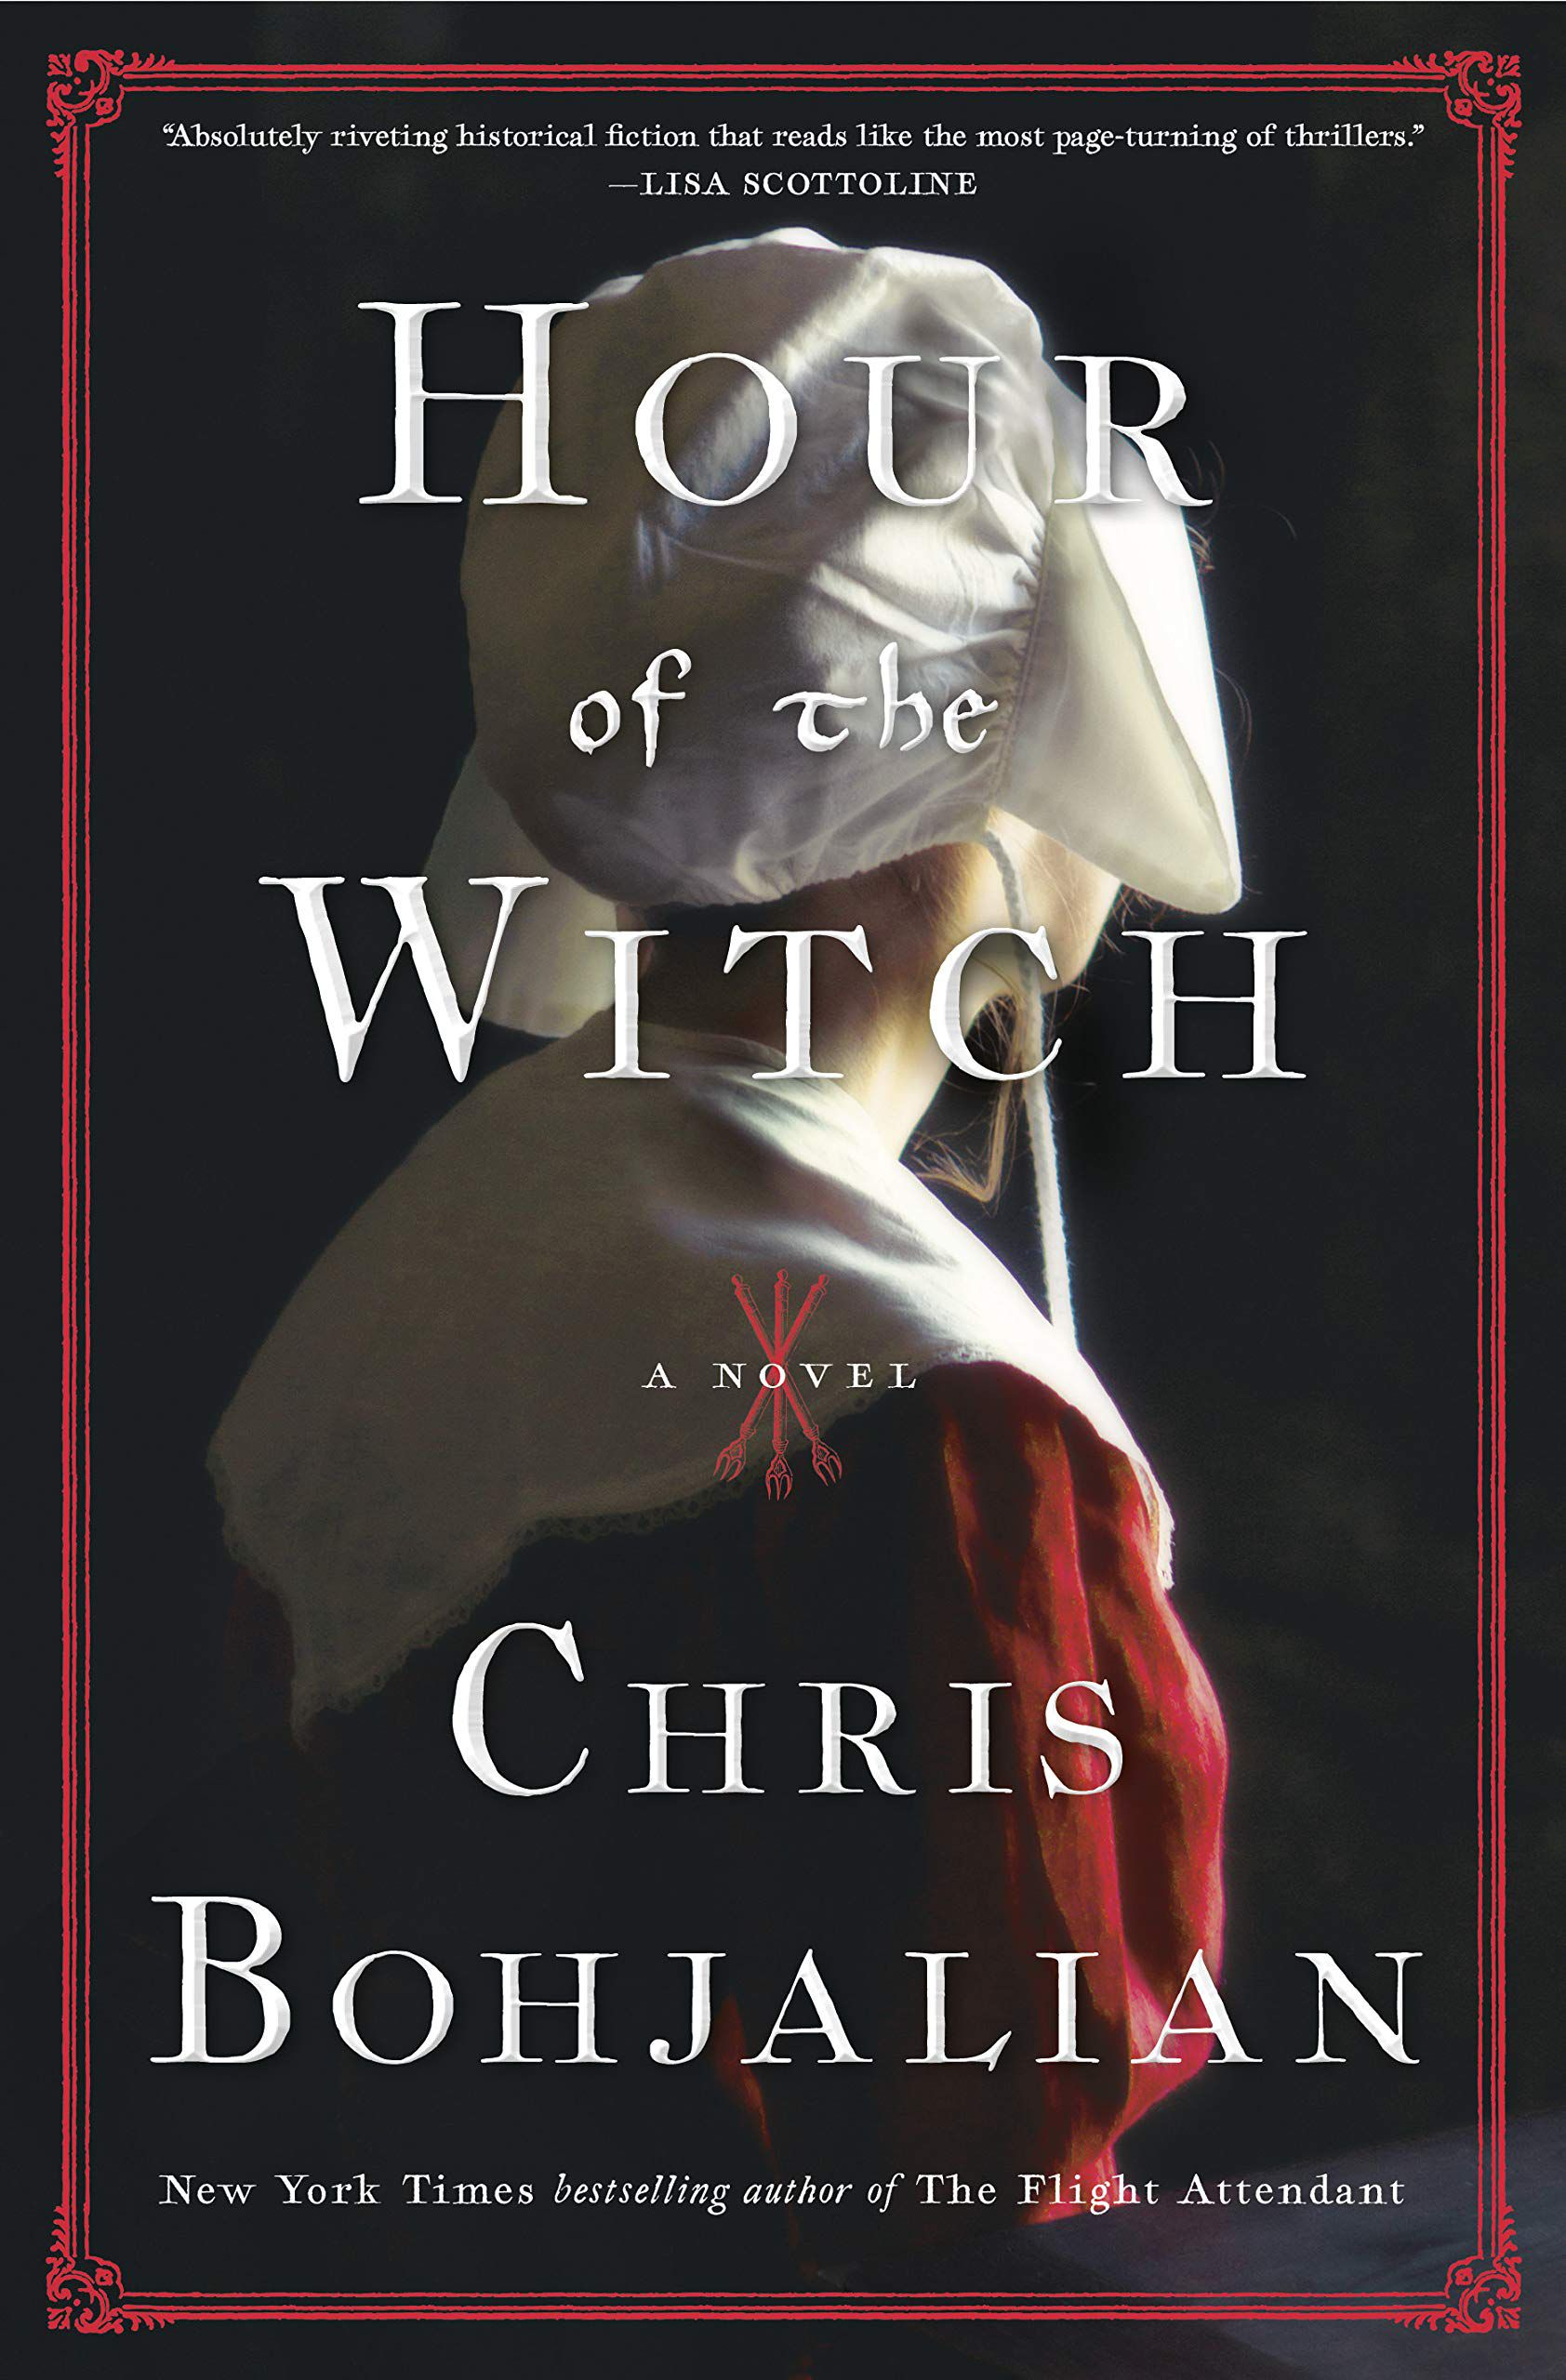 cover image of hour of the witch by chris bohjalian